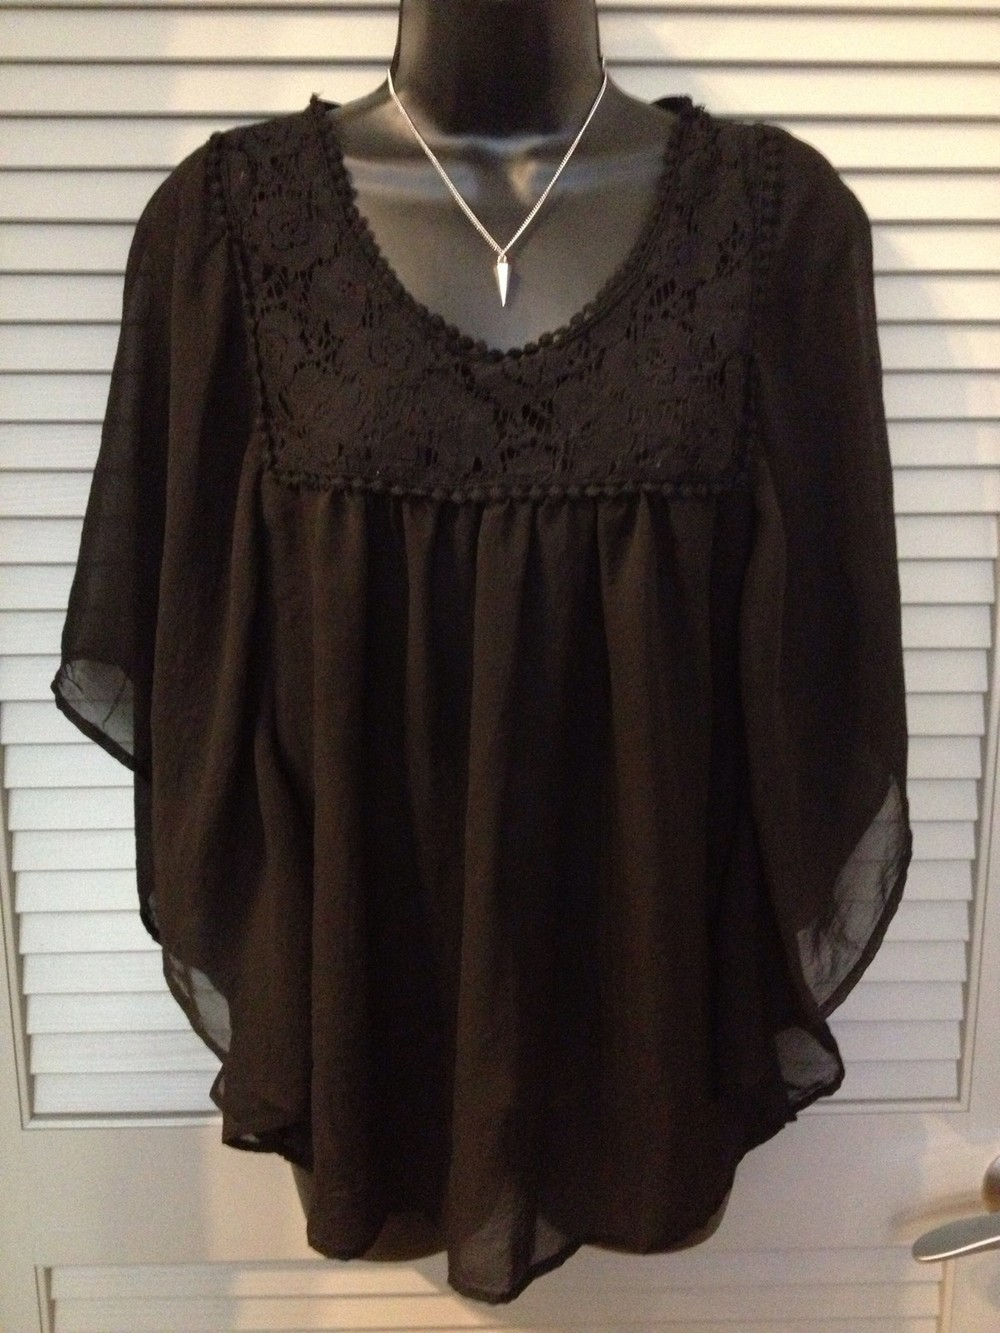 Women's Sheer Black Blouse Click the pic to purchase and enable sustainable food communities in Oakland!